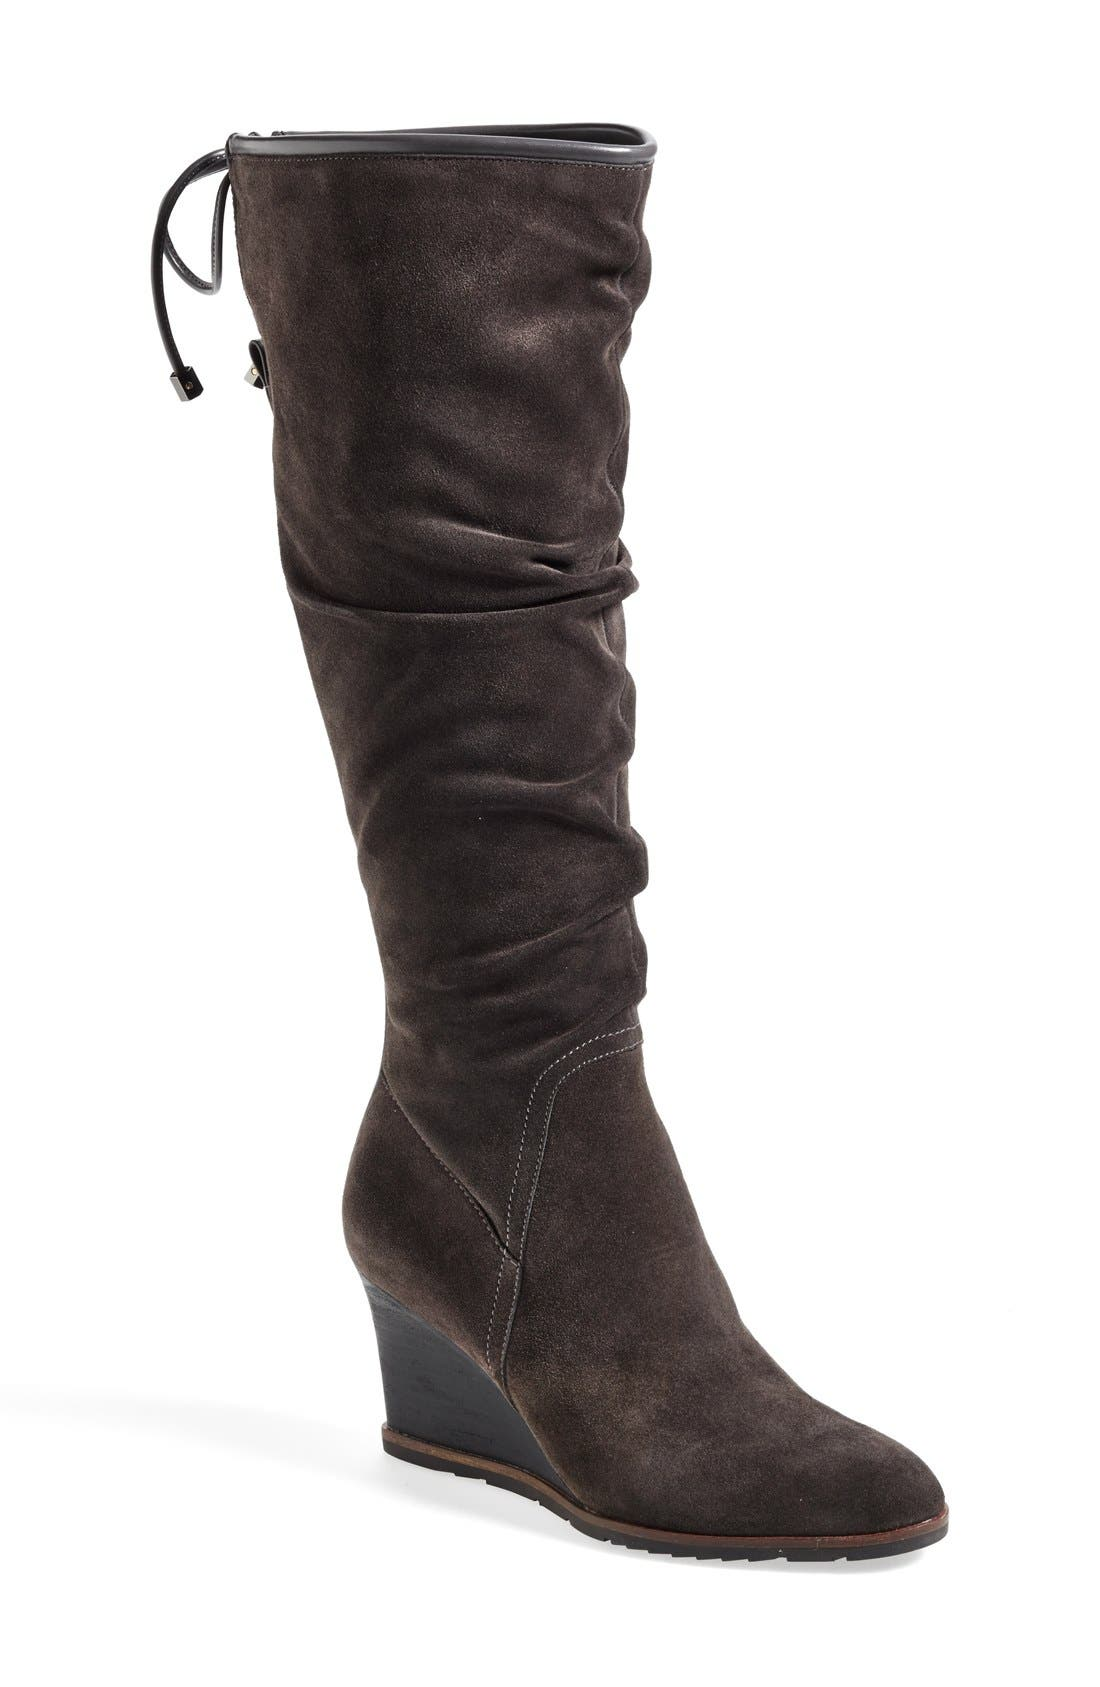 Alternate Image 1 Selected - Franco Sarto 'Dominion' Wedge Boot (Women) (Online Only)